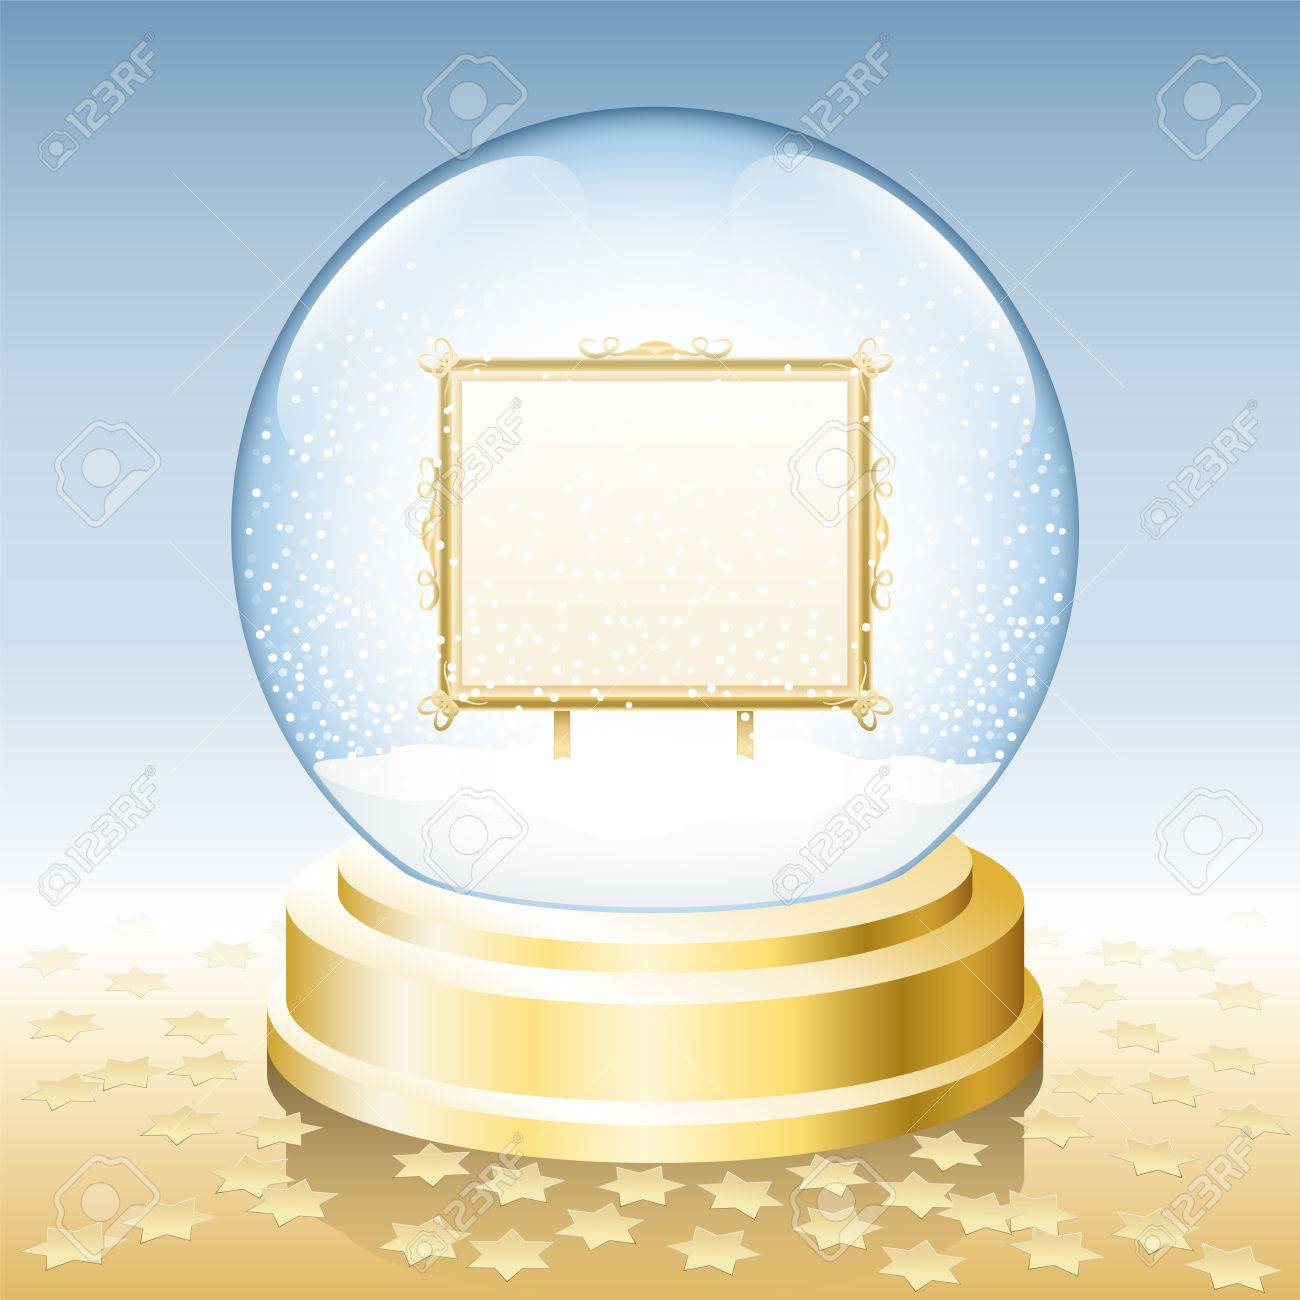 Snow Globe With Golden Frame To Insert Any Photo Or Text. Royalty ...